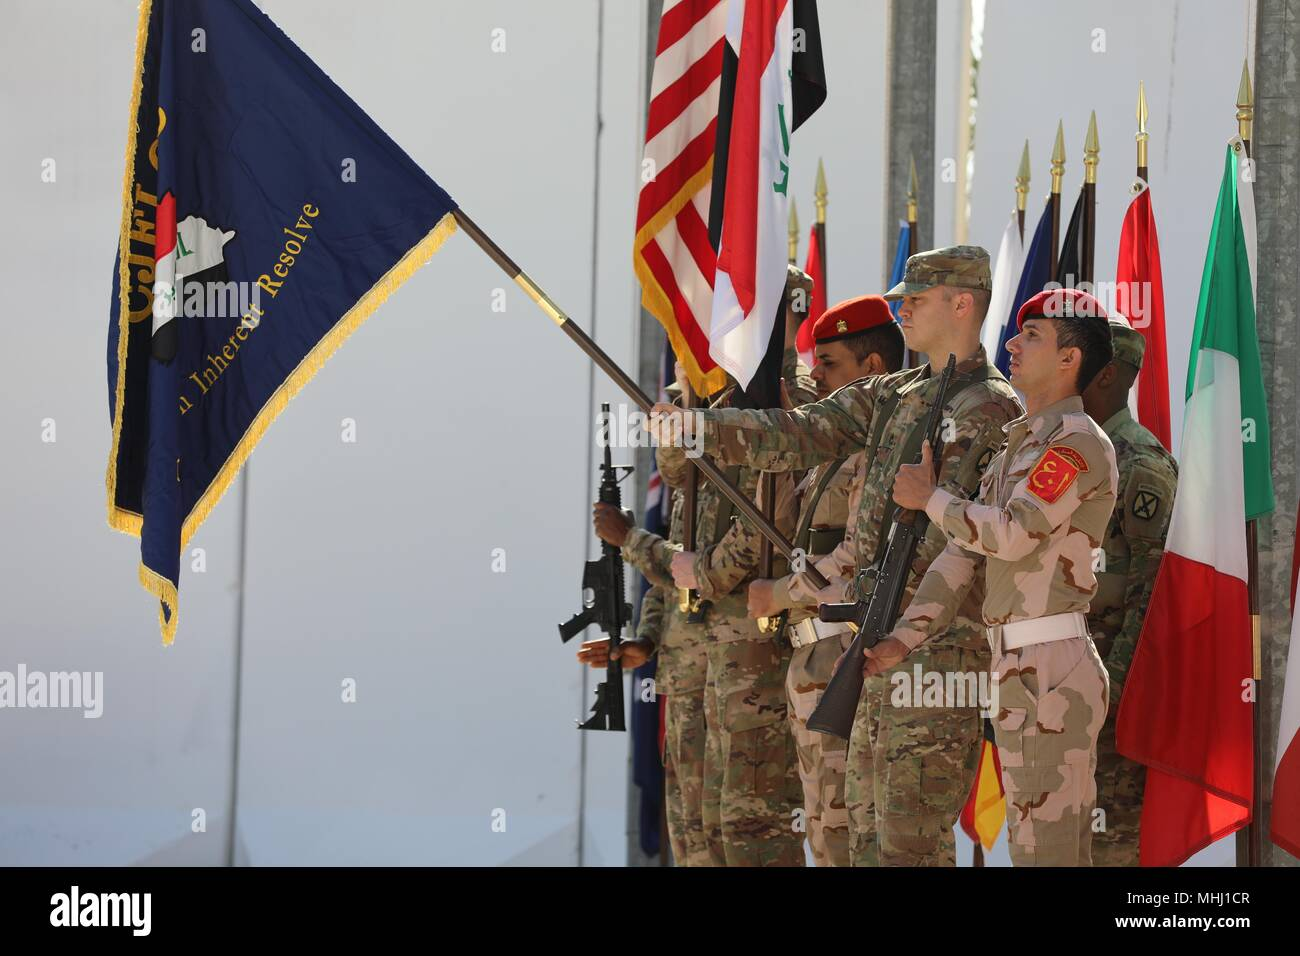 Coalition members with the Combined Joint Forces Land Component Command color guard render a salute during the CJFLCC deactivation ceremony at Baghdad, Iraq, April 30, 2018, April 30, 2018. The deactivation signifies the end of major combat operations against ISIS in Iraq and acknowledges the changing composition and responsibilities of the Coalition. (U.S. Army photo by Sgt. Jonathan Pietrantoni). () - Stock Image